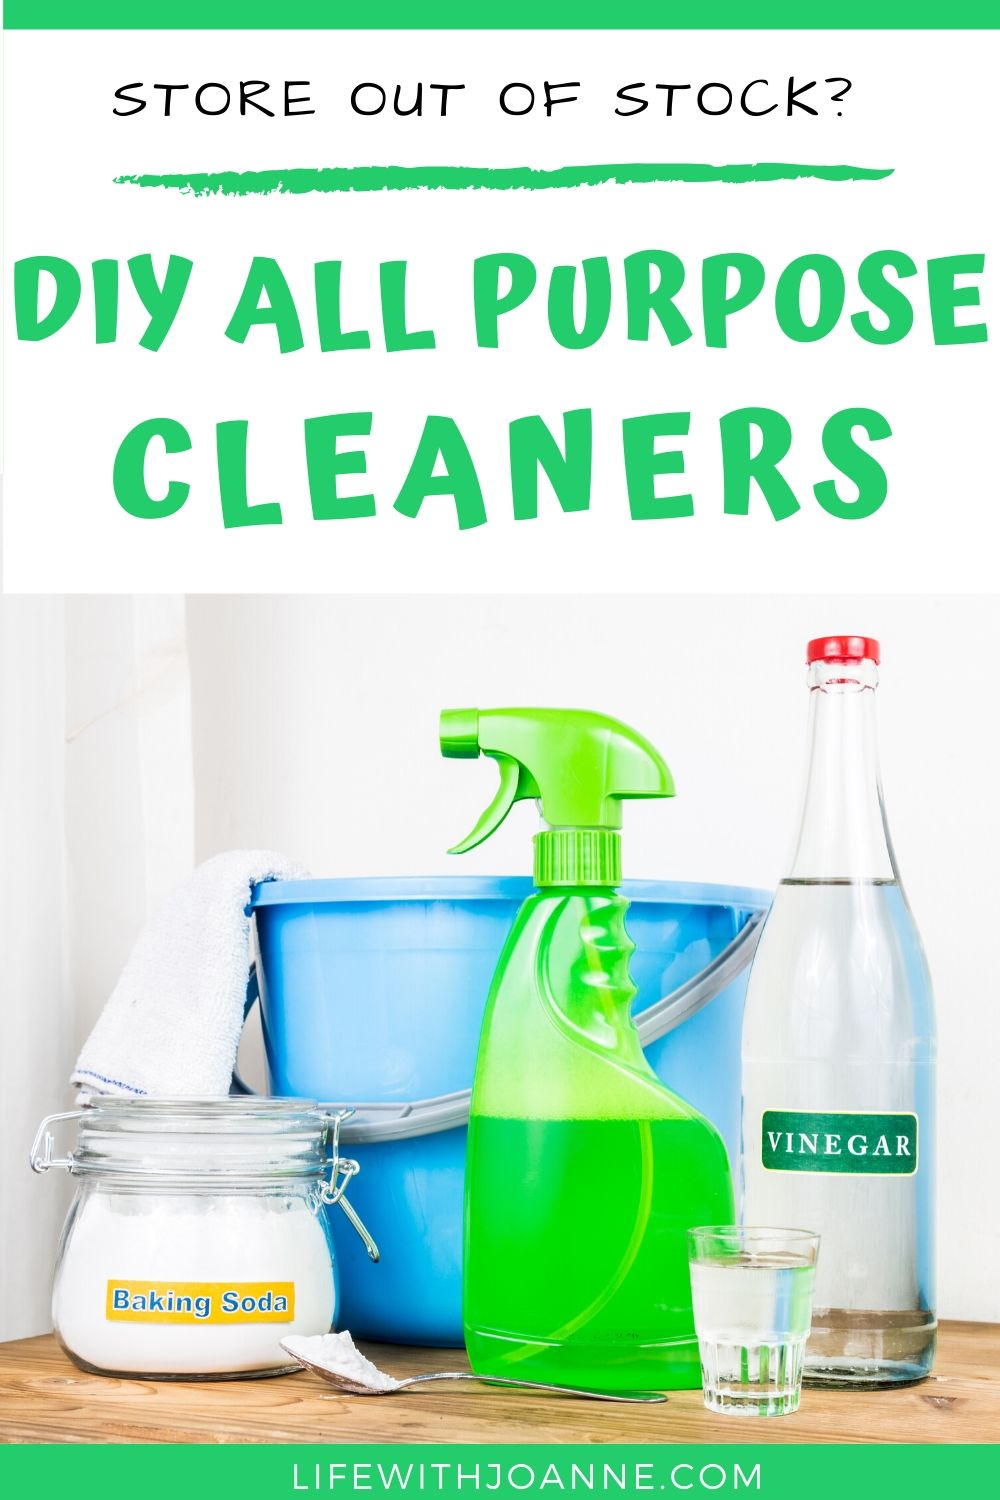 DIY All Purpose Cleaners